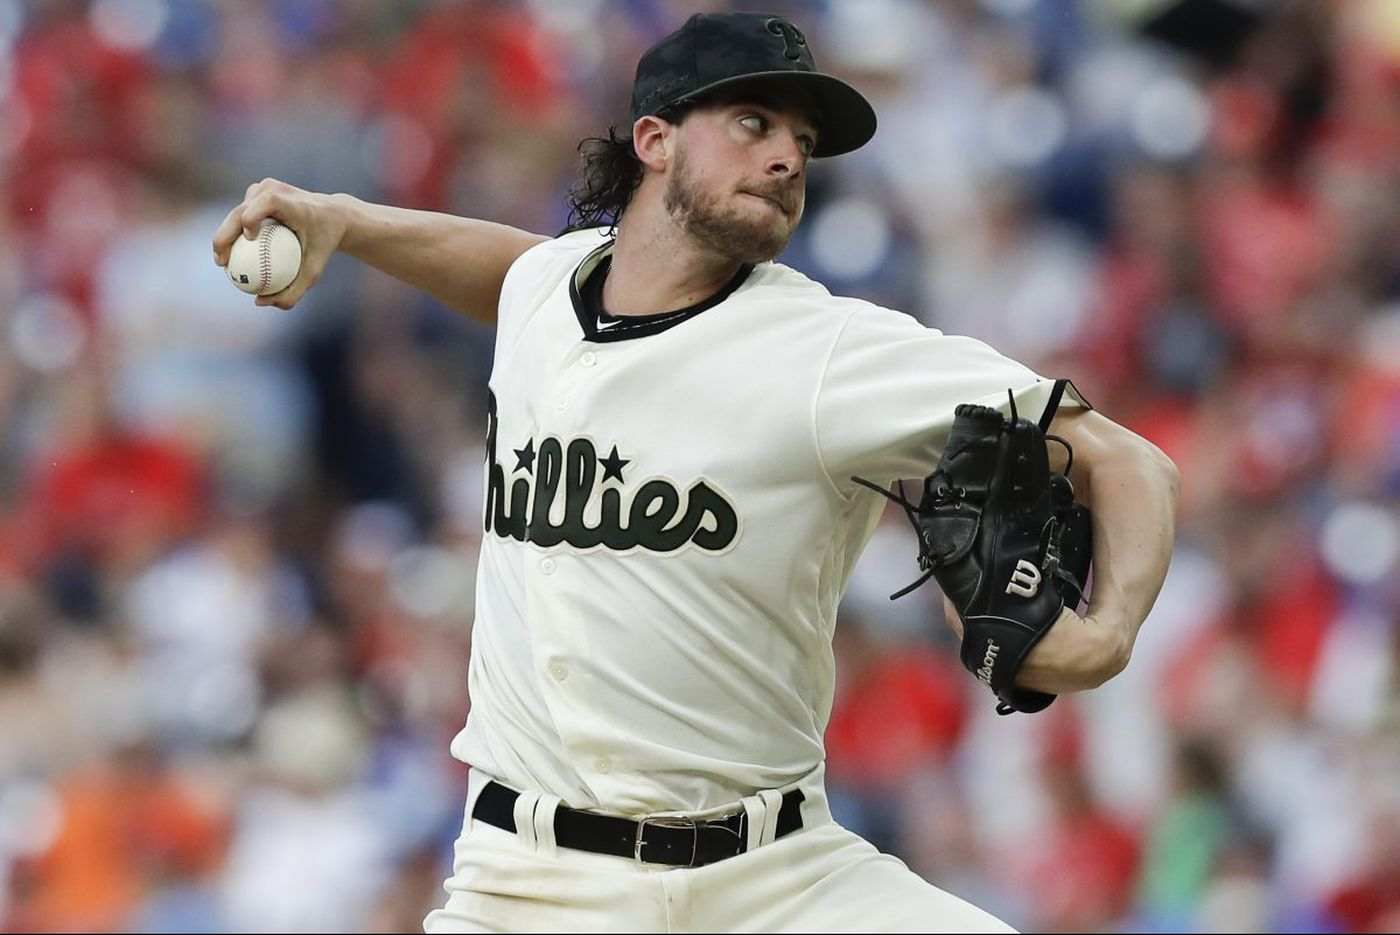 Aaron Nola flirts with no-hitter, puts Phillies alone in NL East first place for first time since 2011